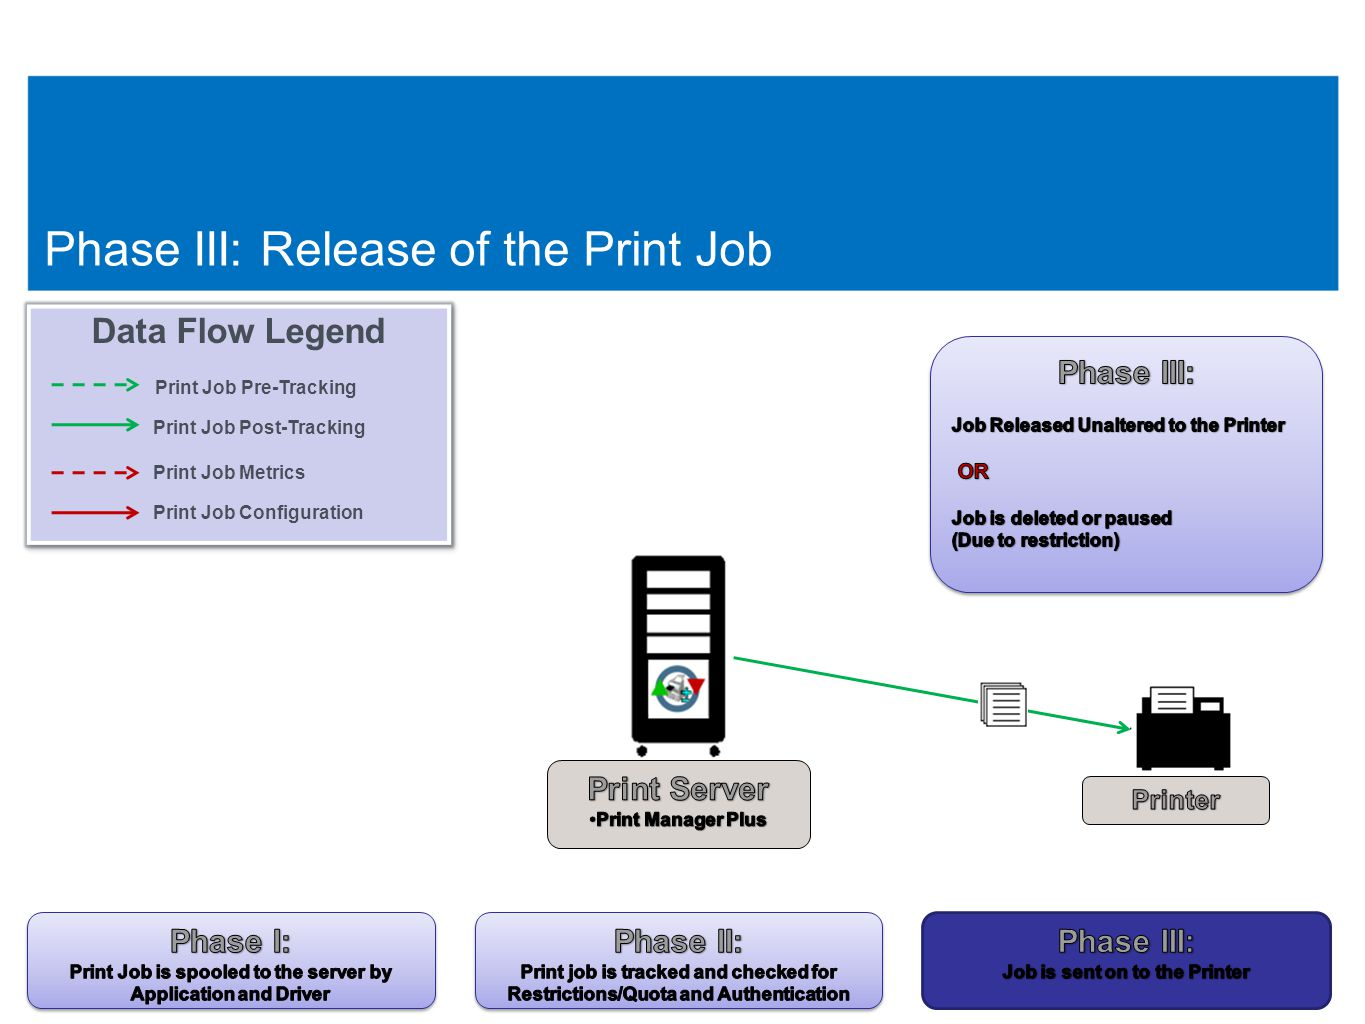 23 Phase III: Release of the Print Job 23 Data Flow Legend Print Job Pre-Tracking Print Job Post-Tracking Print Job Metrics Print Job Configuration Data Flow Legend Print Job Pre-Tracking Print Job Post-Tracking Print Job Metrics Print Job Configuration